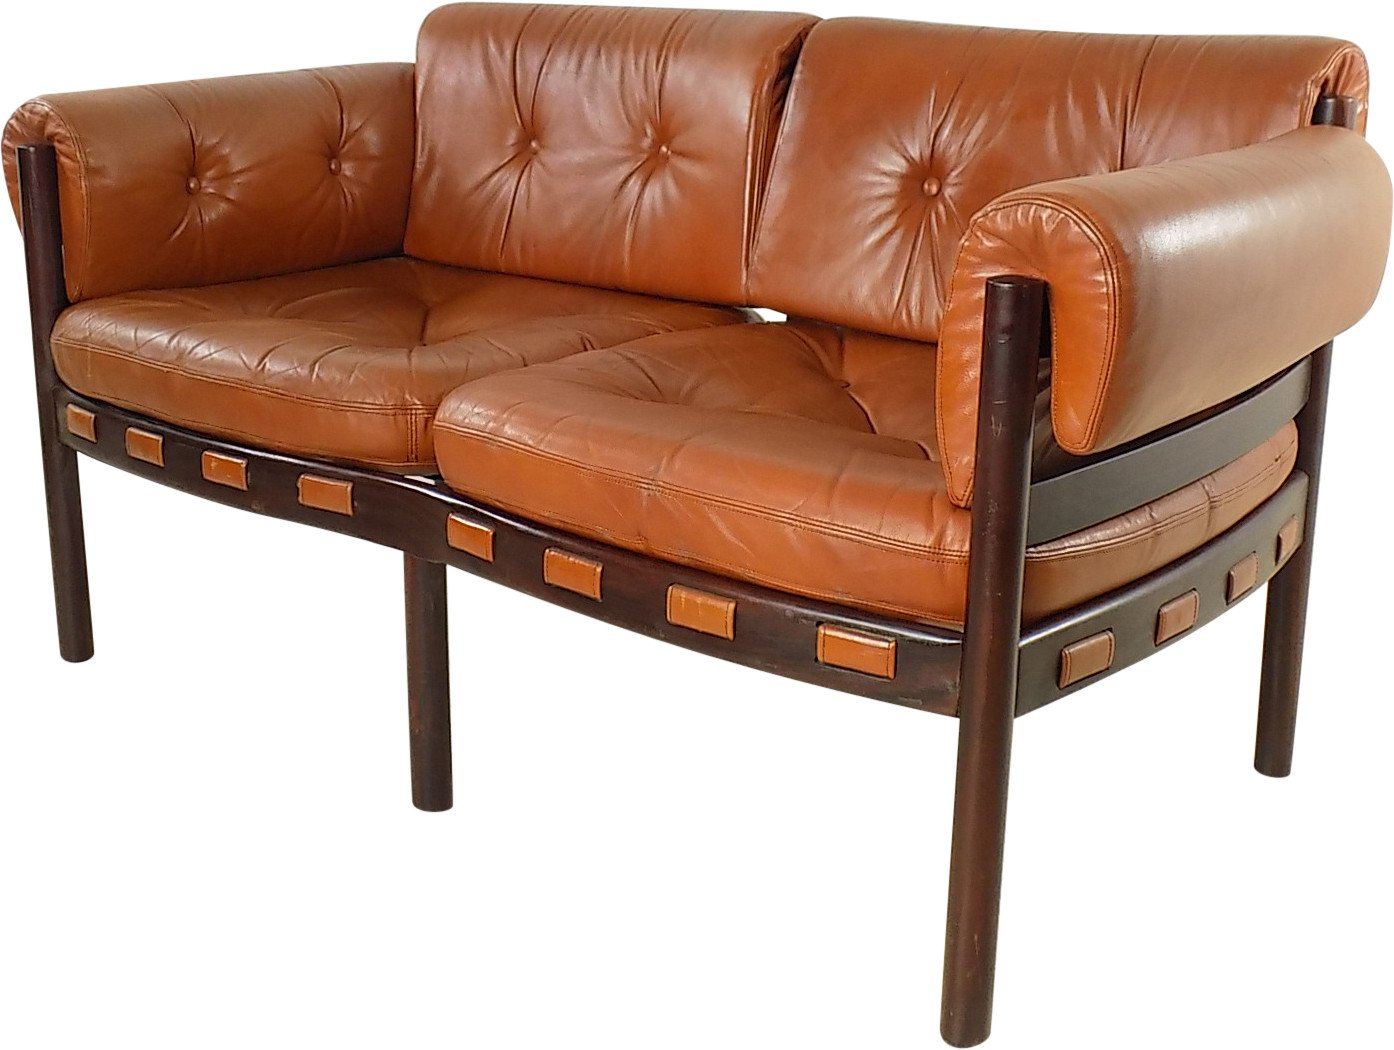 Sofa by A. Norell, Coja, 1960s